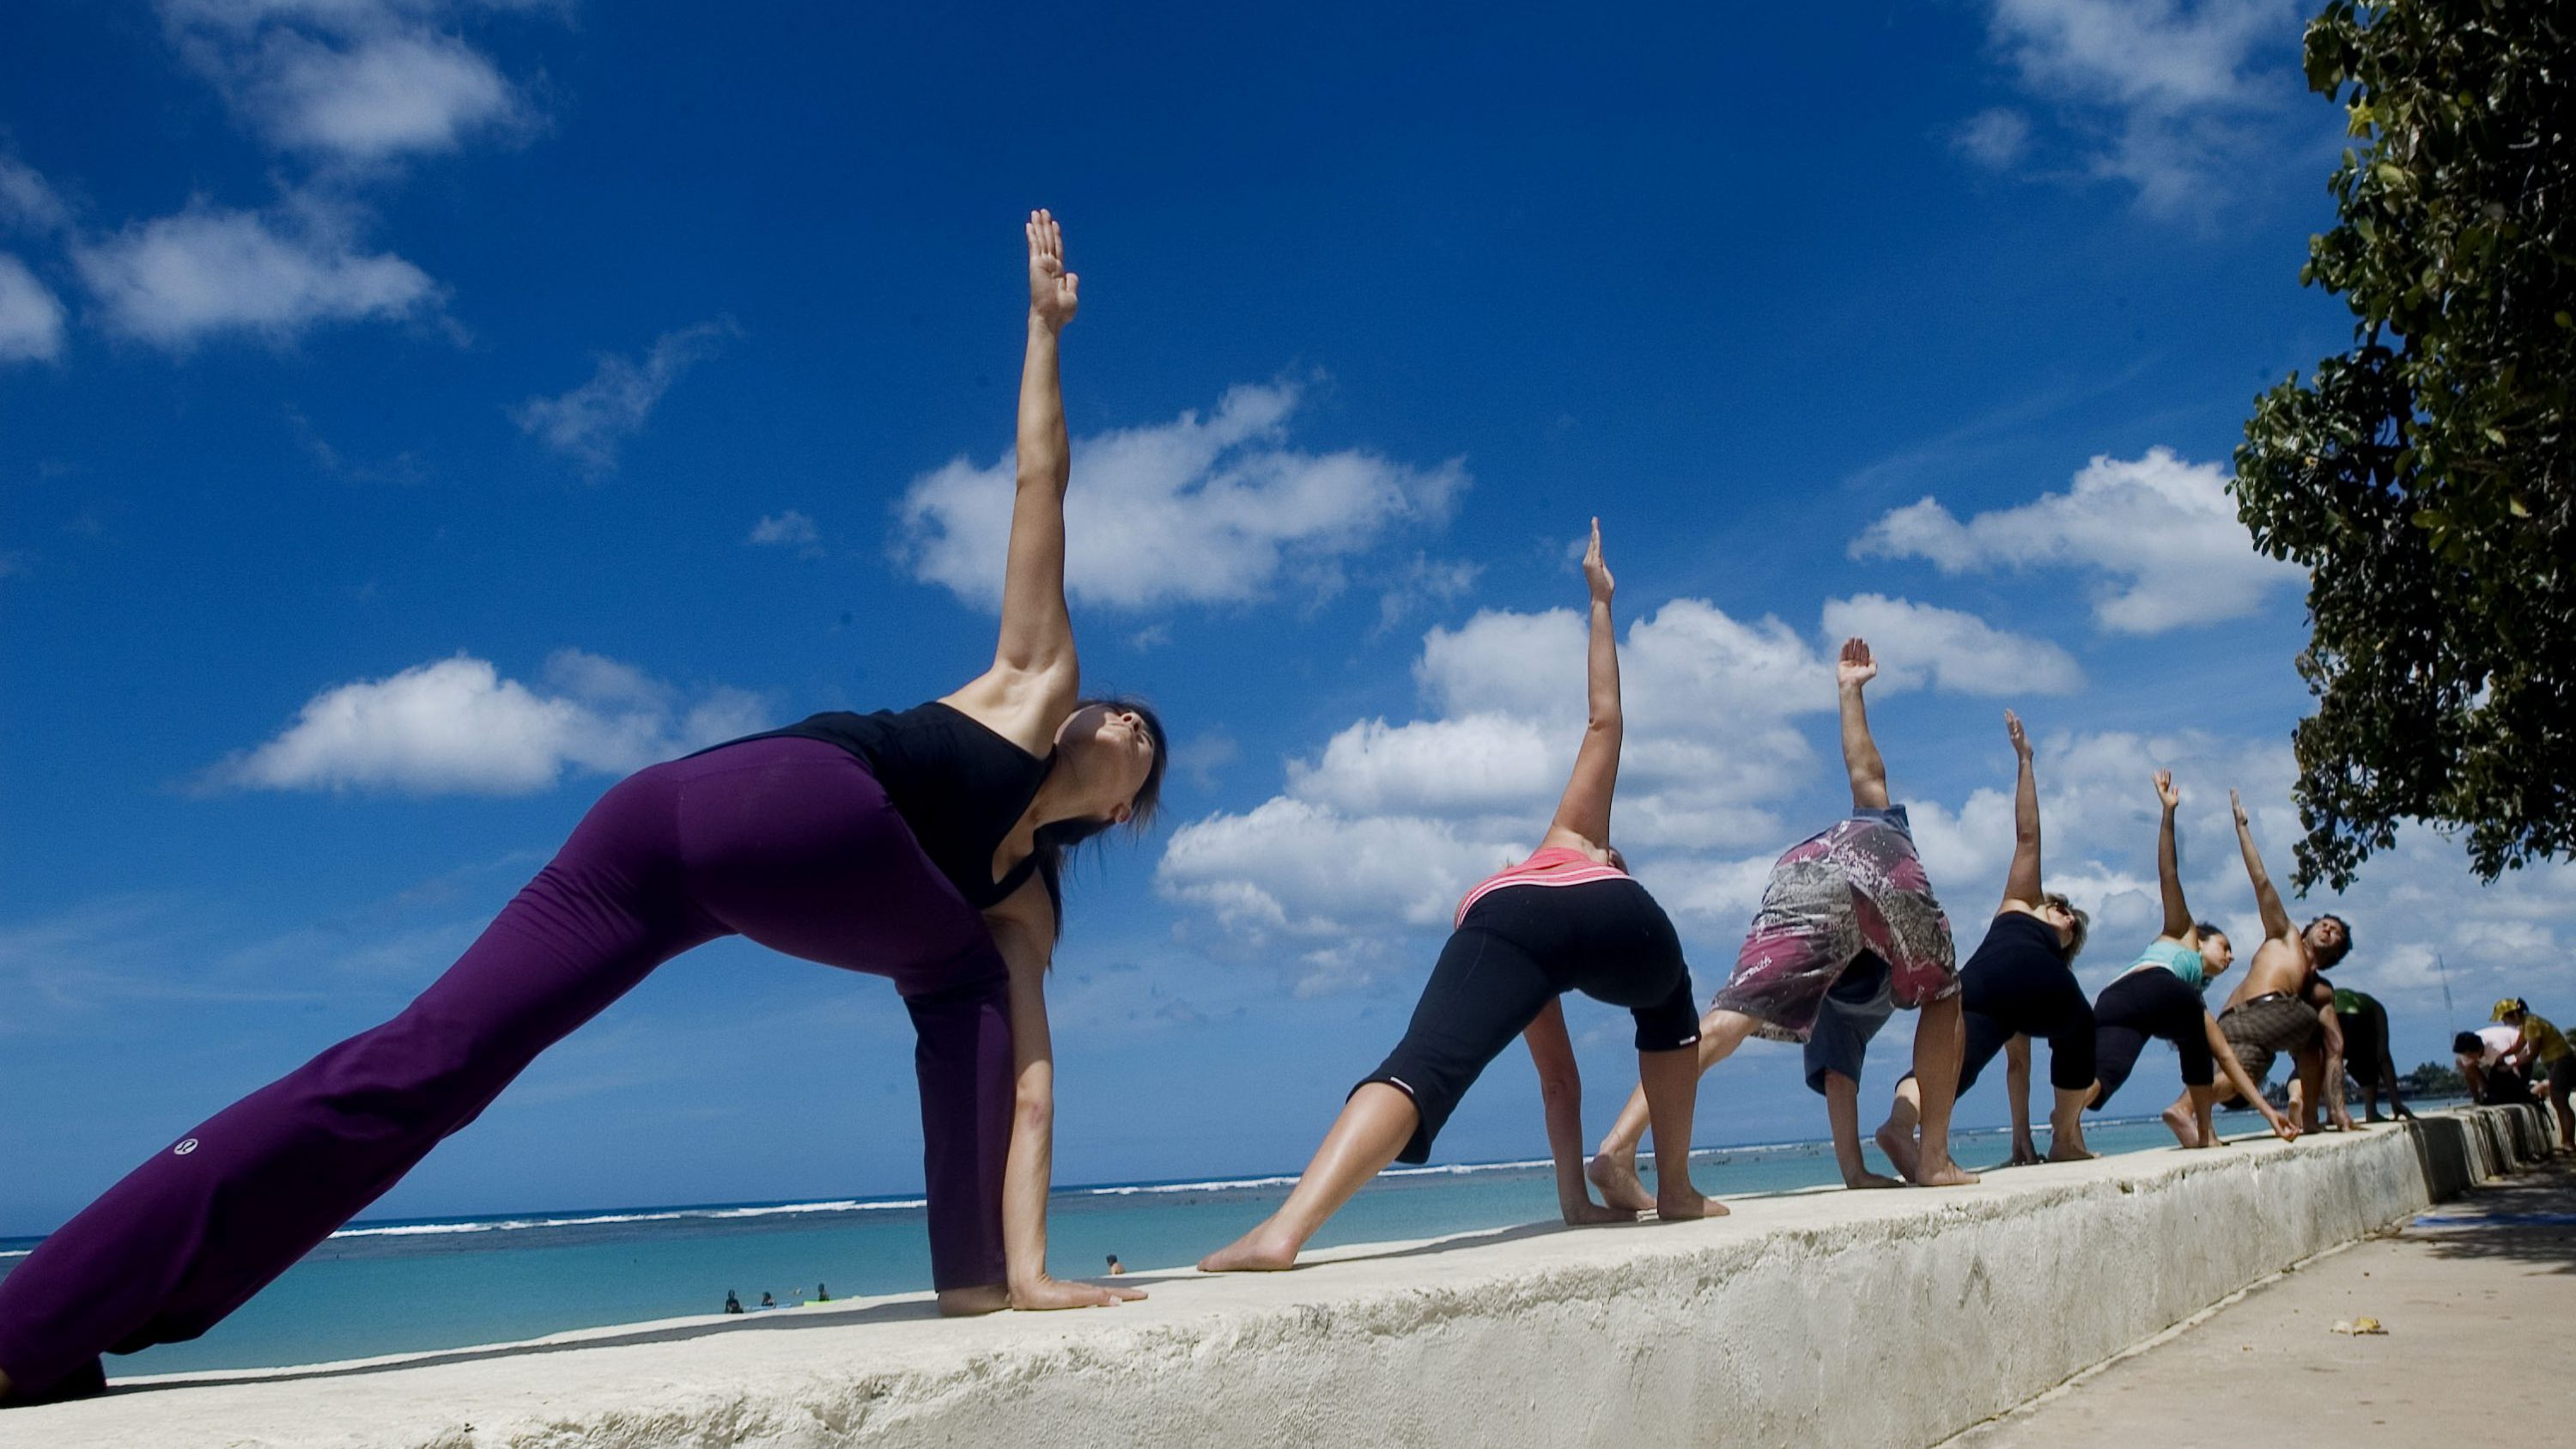 """Sommerlyn Leong left, and Keely Bruns, second from left, and others participate in a """"guerilla yoga"""" practice session alongside Ala Moana Beach, Sunday July 1, 2007, in Honolulu, Hawaii. The event is part of a series of """"random acts of yoga"""" in public places throughout Honolulu to bring awareness to yoga and physical fitness."""